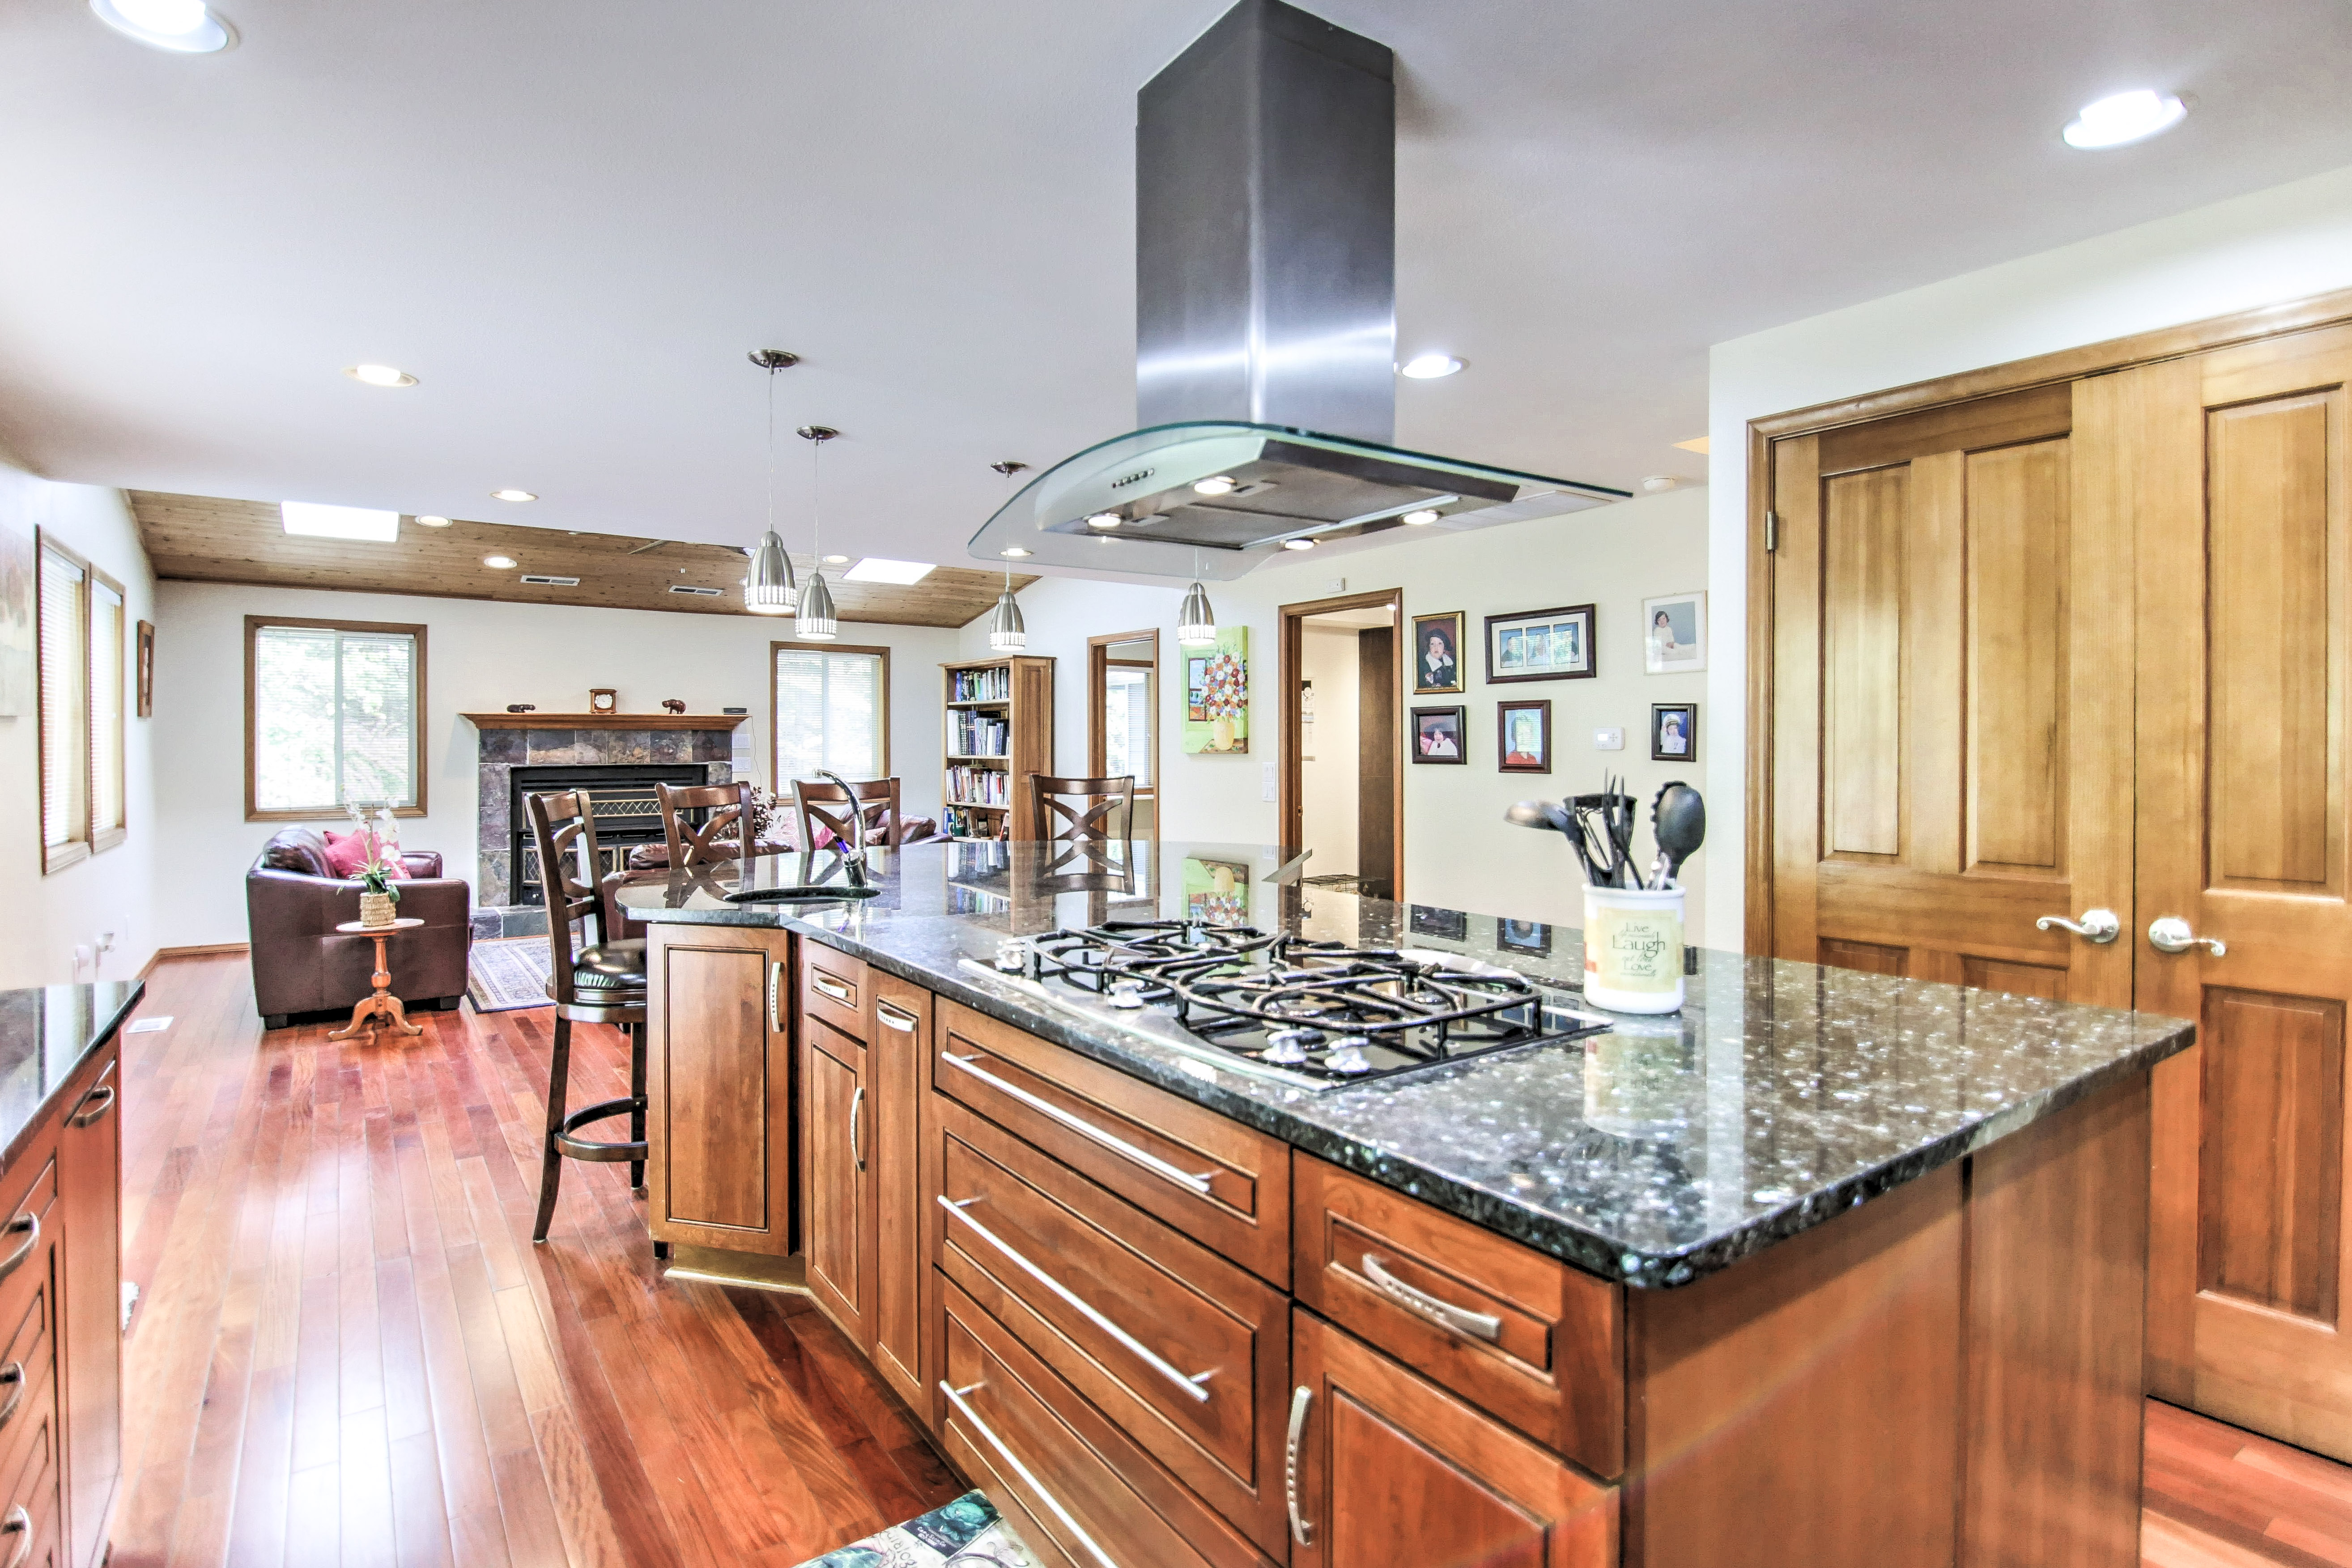 Kitchen of your dream